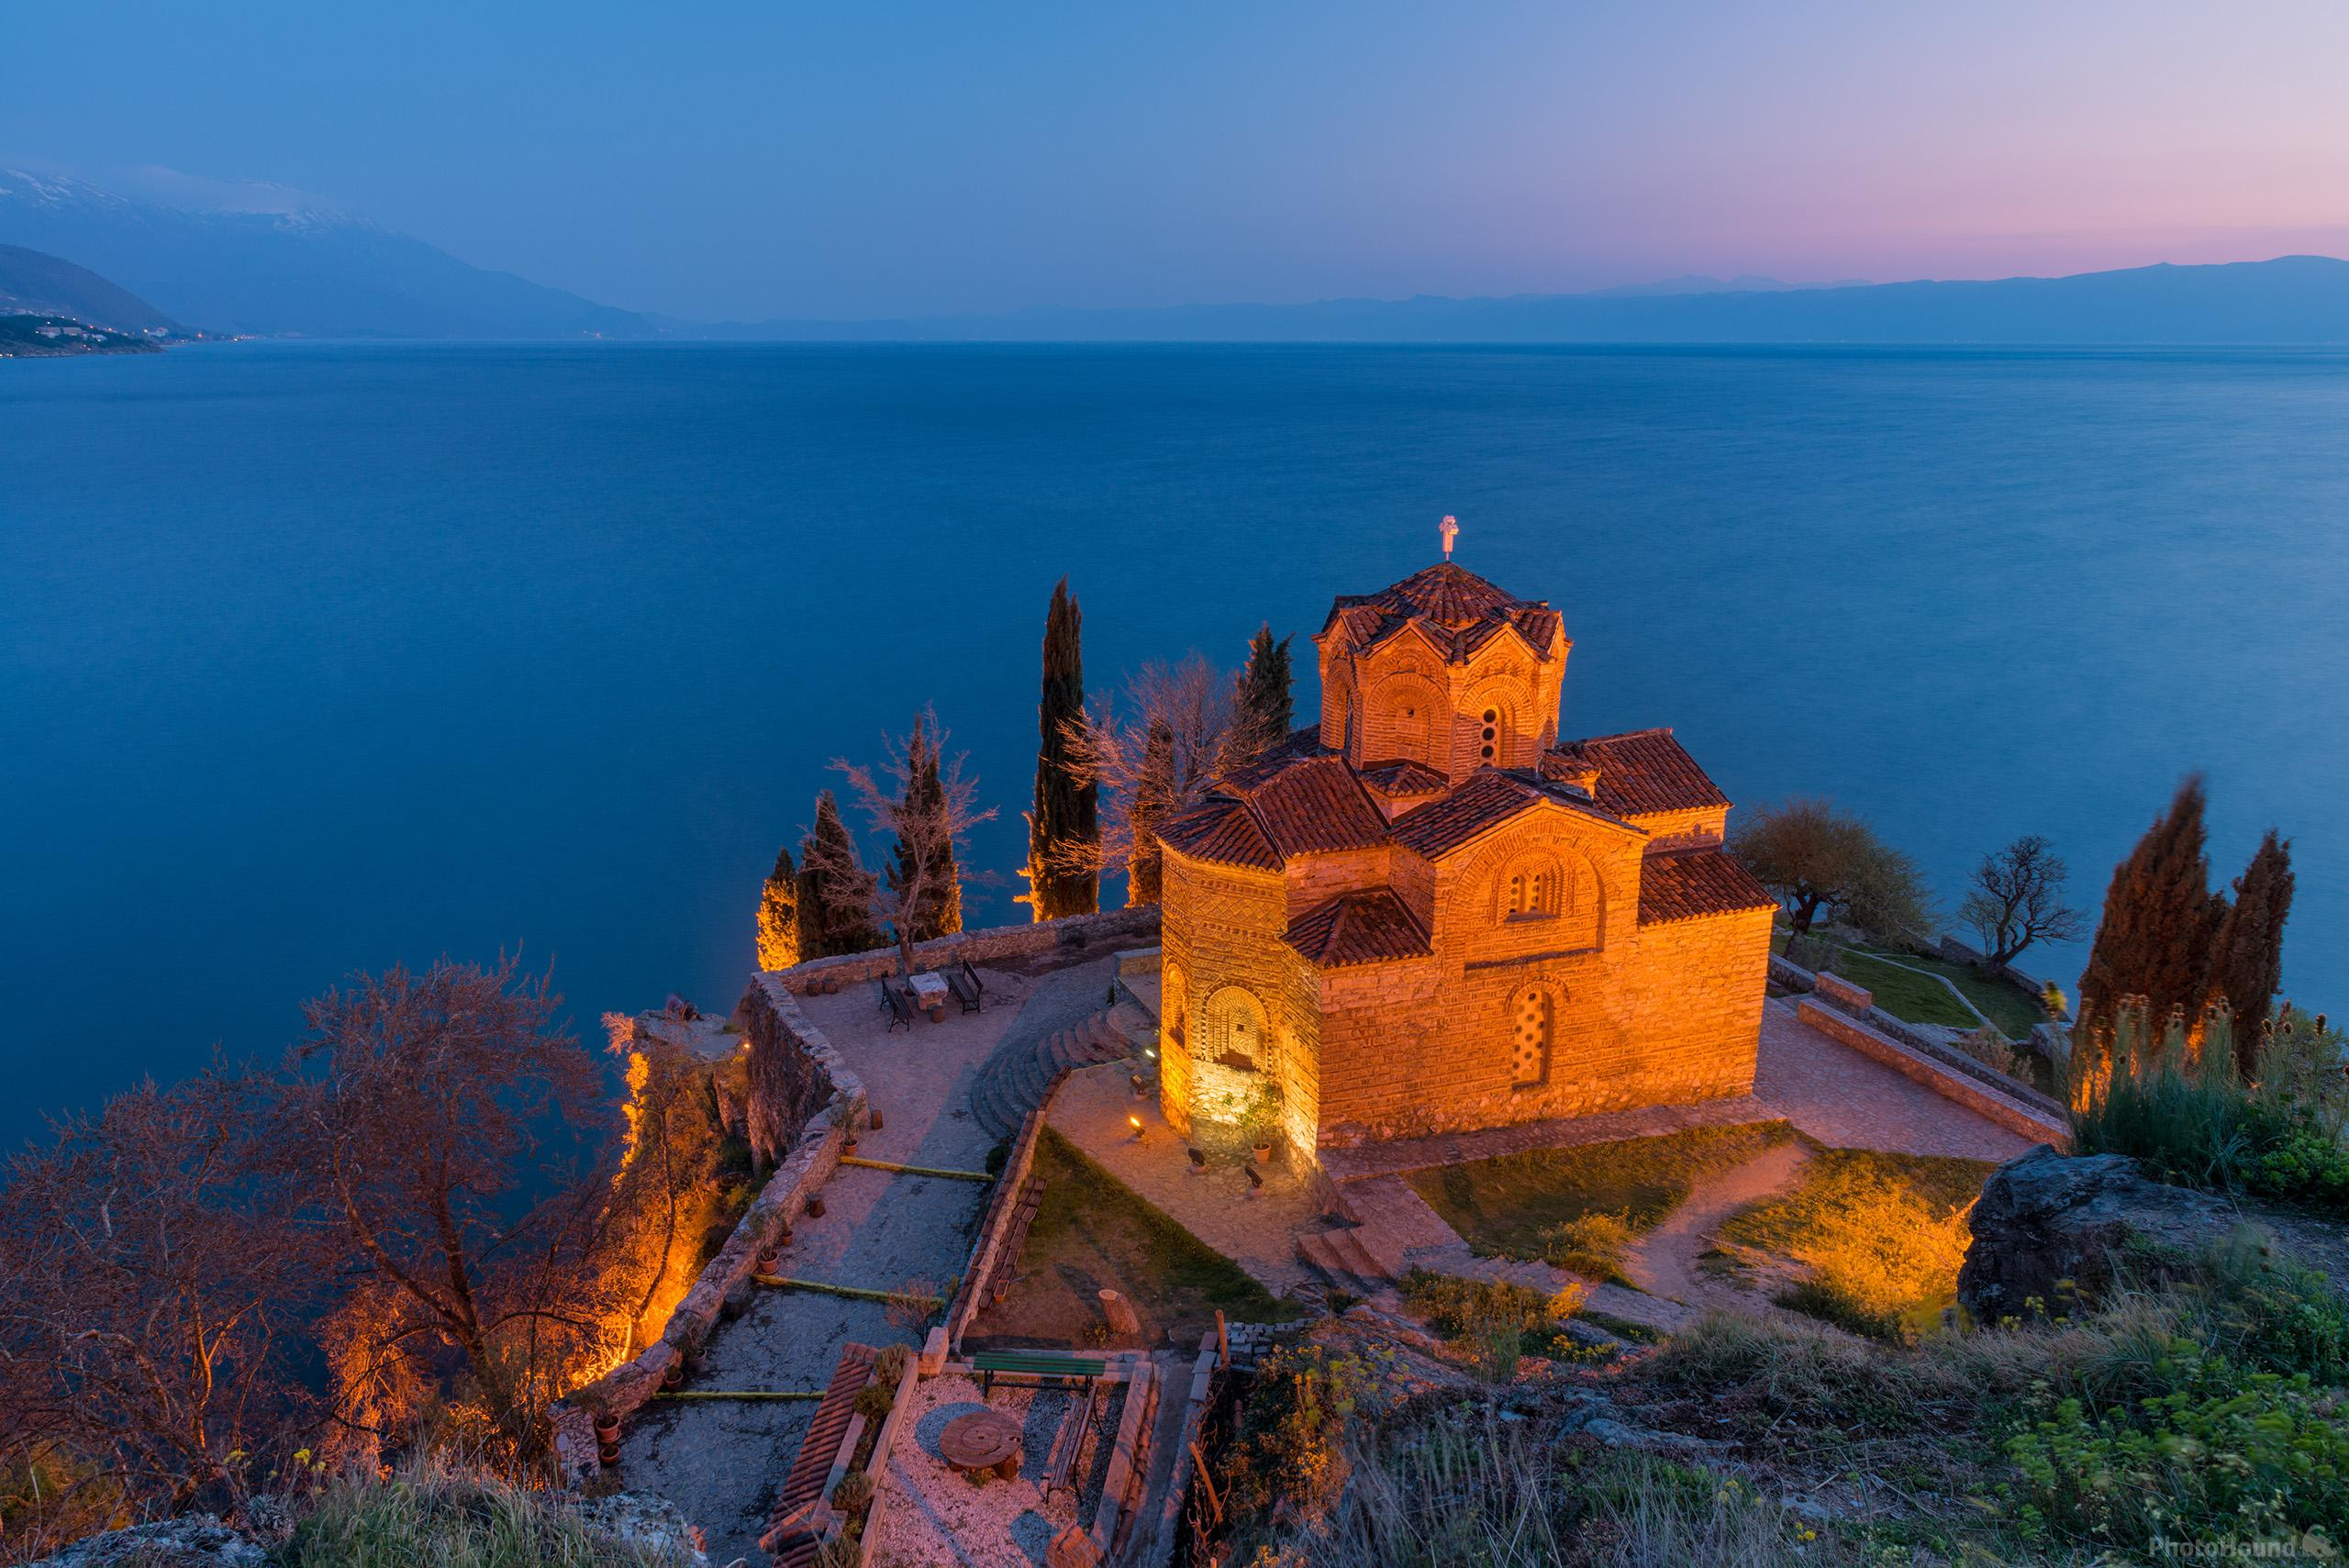 Macedonia (FYROM) photo locations